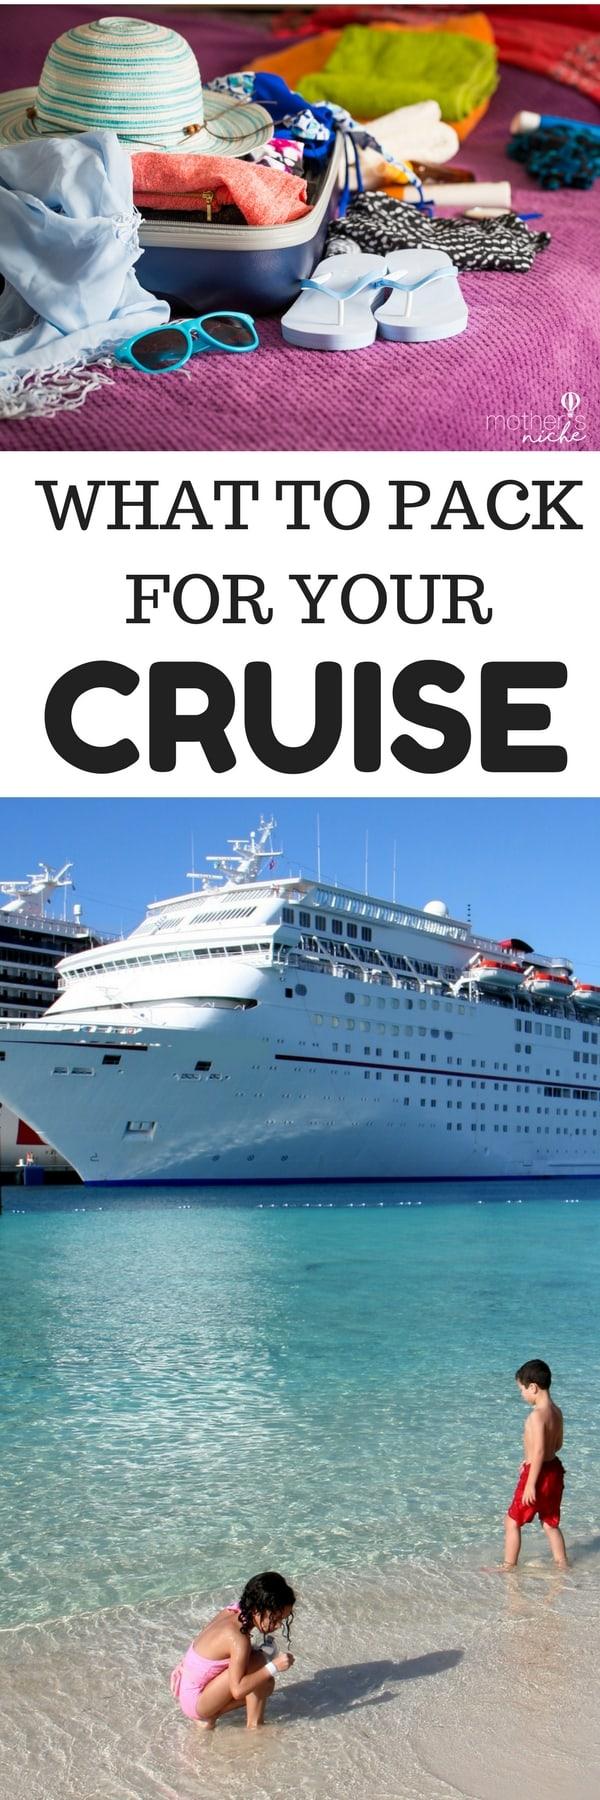 What to pack for your cruise! Lots of cruising tips